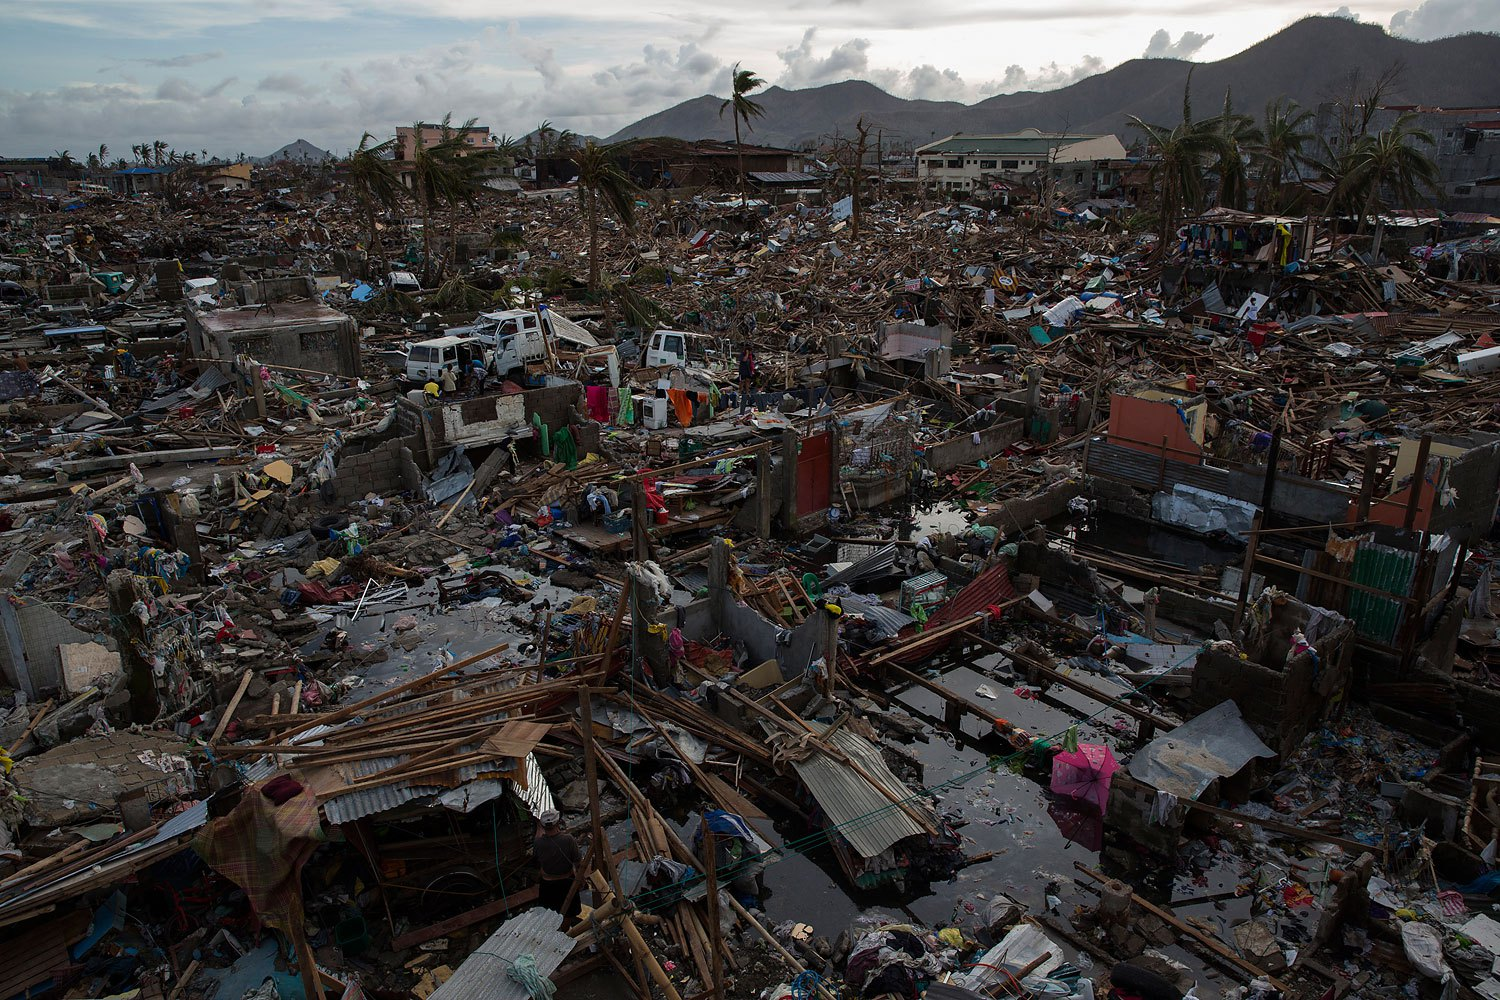 A neighborhood destroyed by Haiyan Typhoon in Tacloban,  Philippines on November 13, 2013.